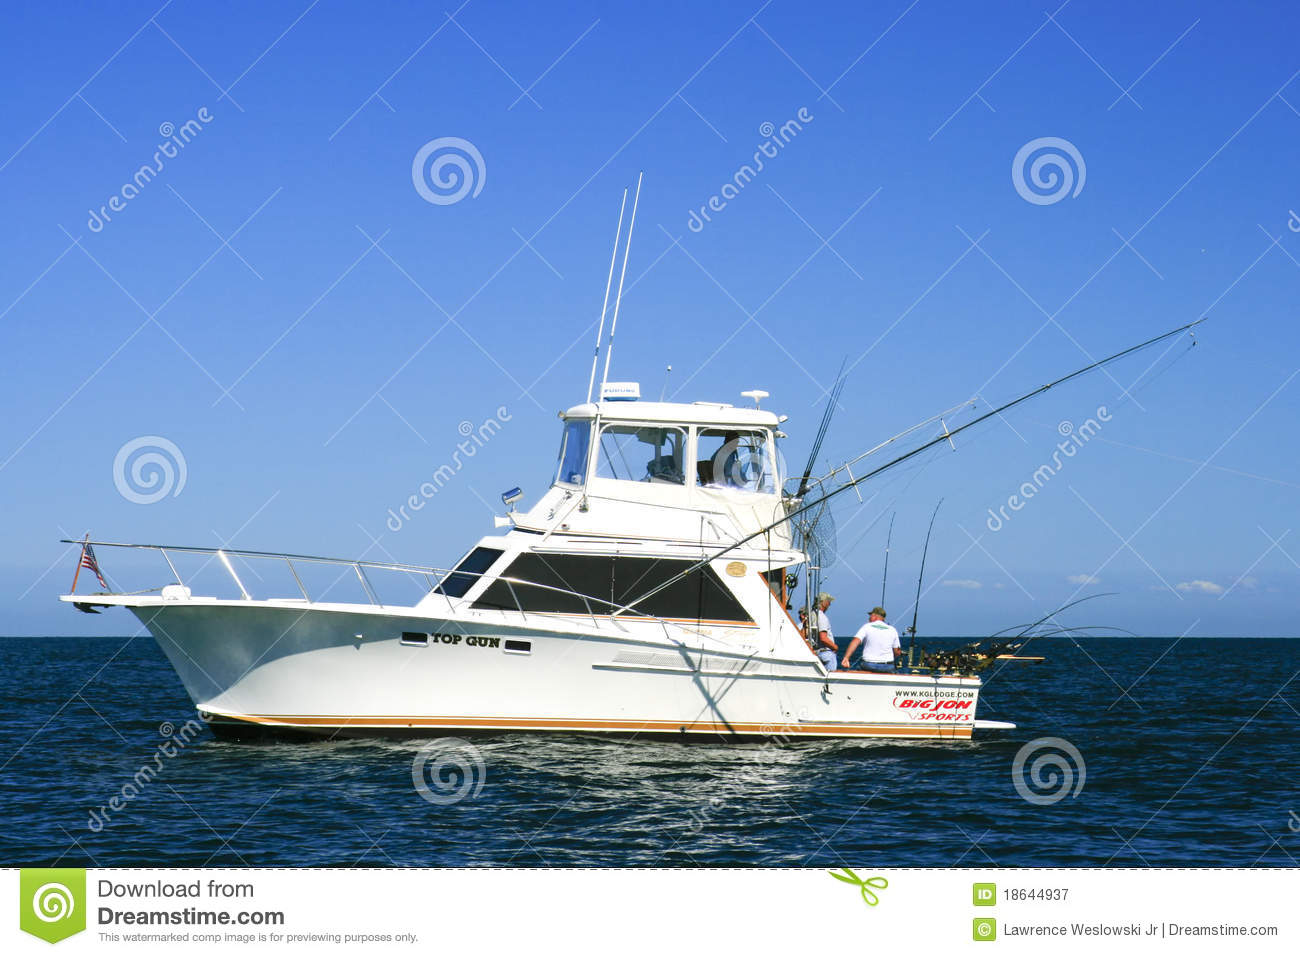 Sport fishing lake ontario charter boat top gun for Best sport fishing boats